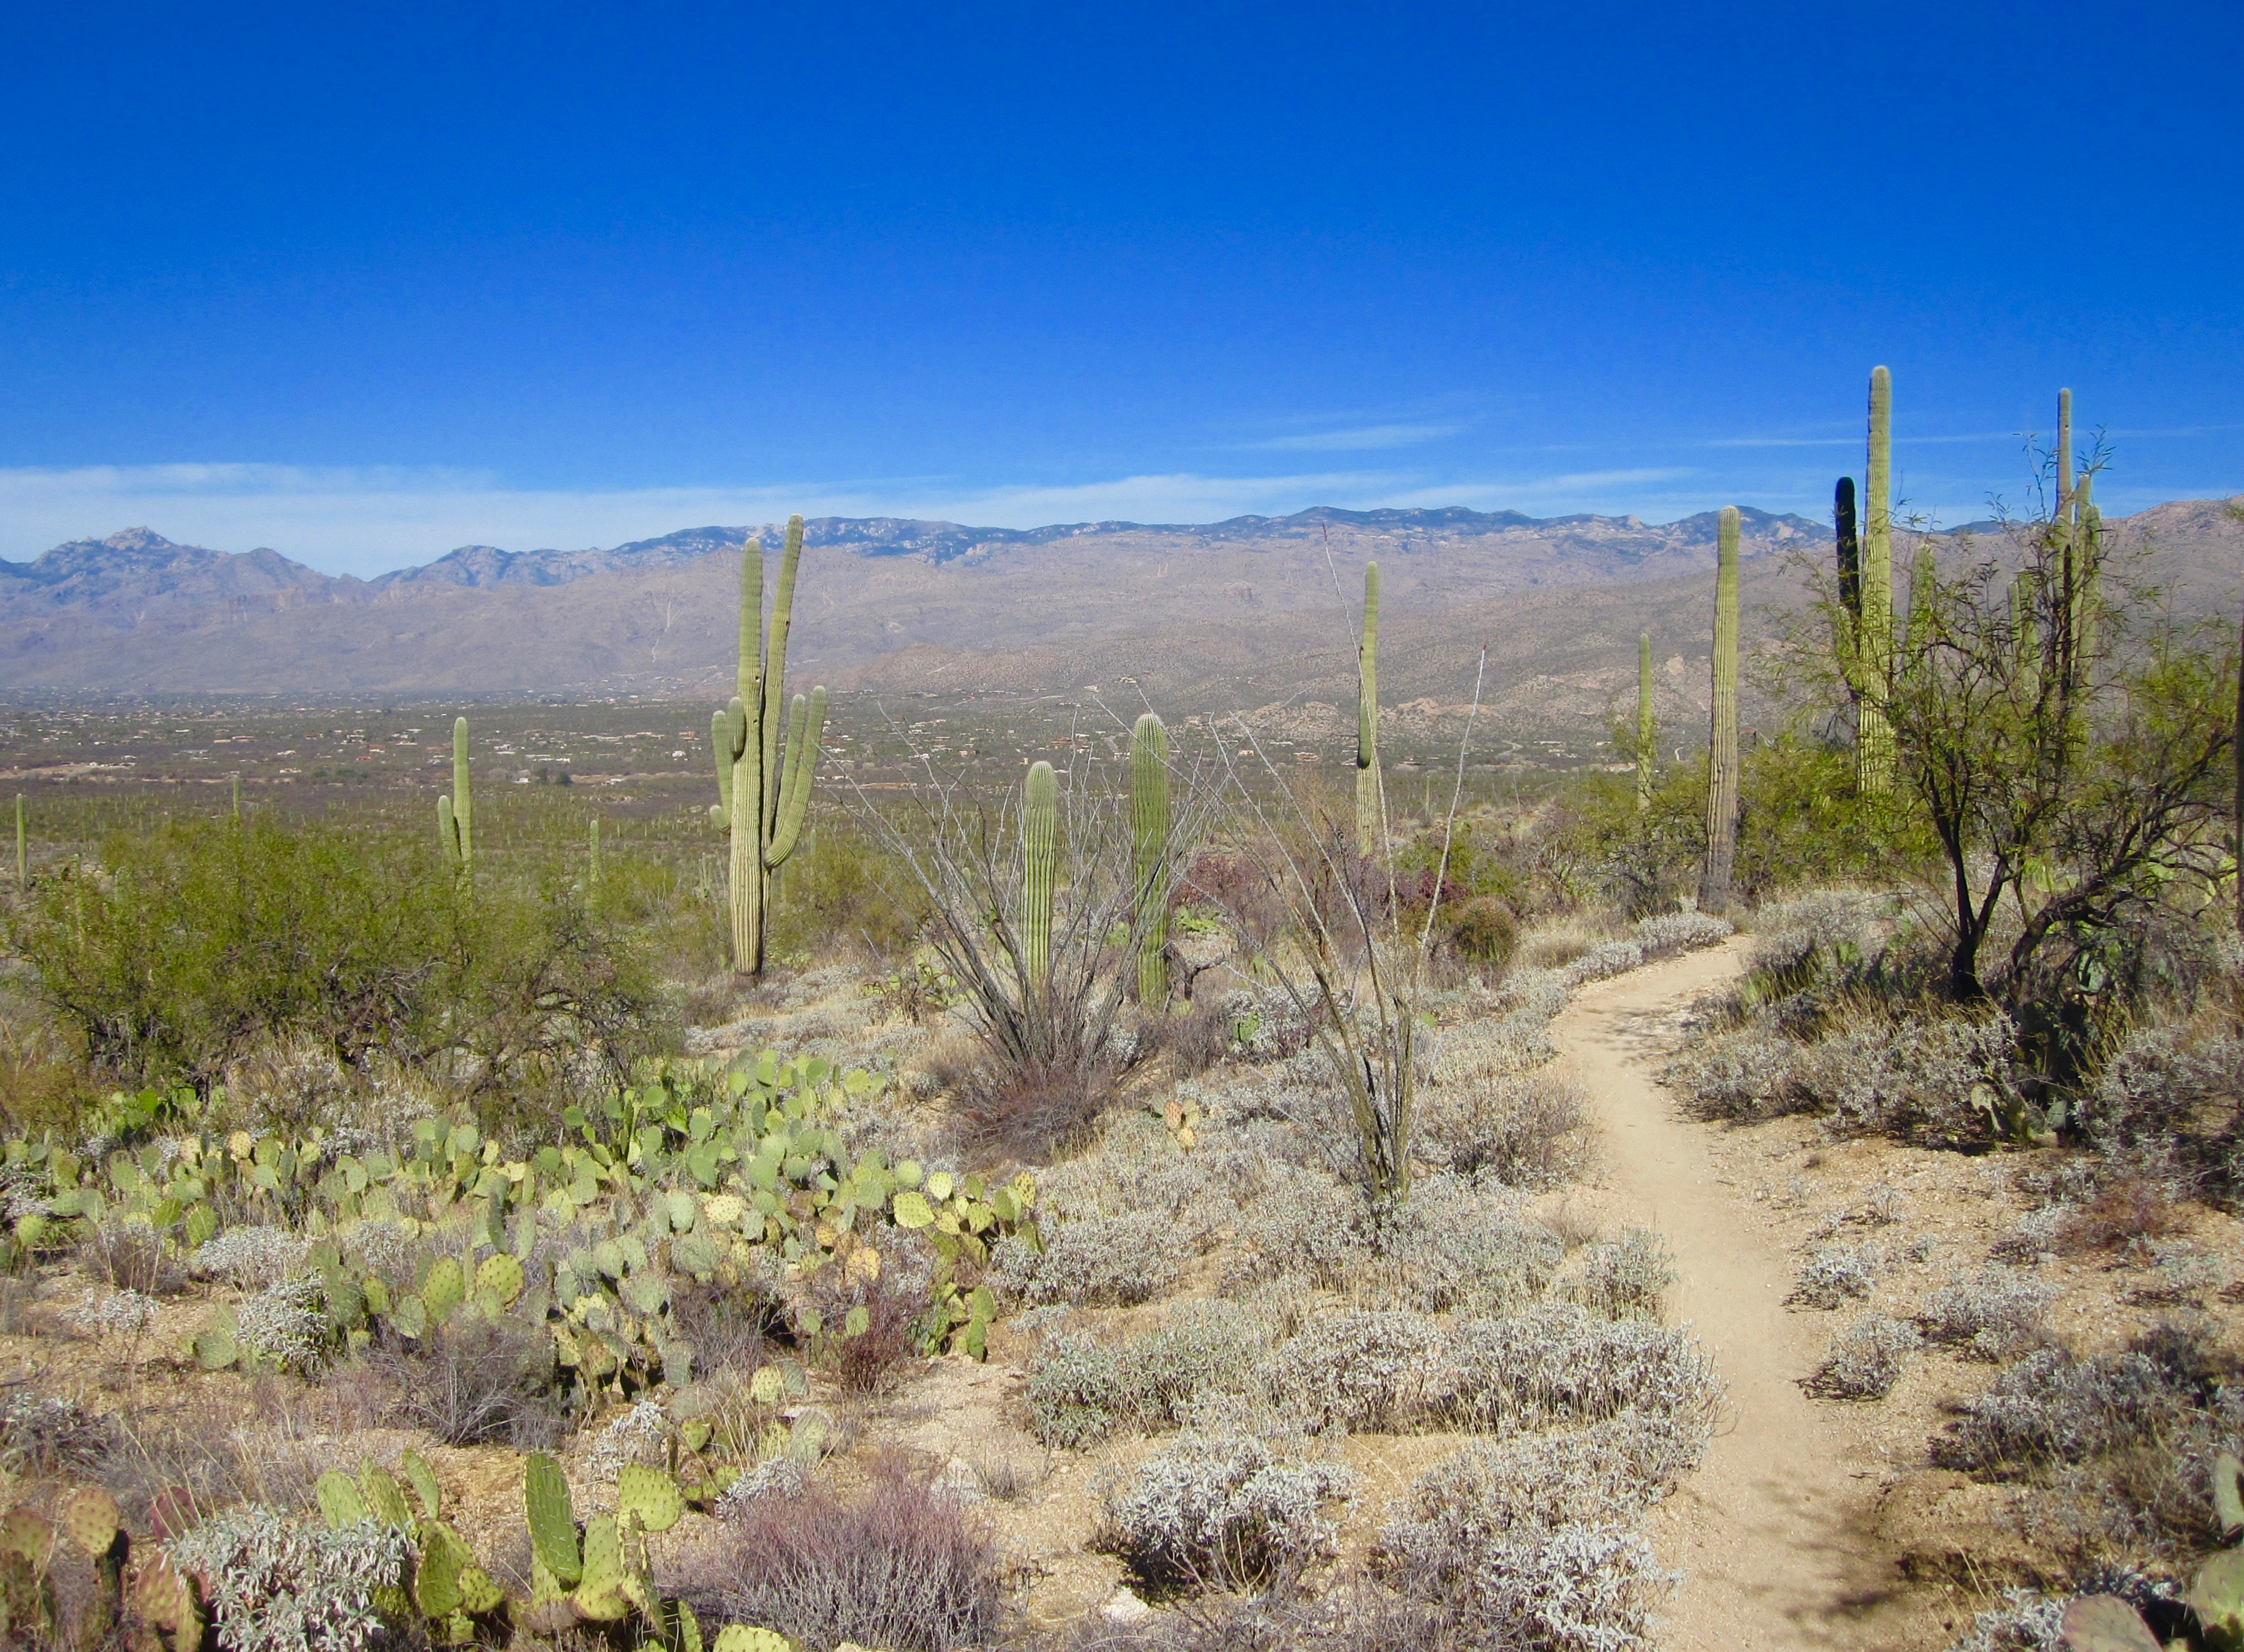 #40 Saguaro National Park